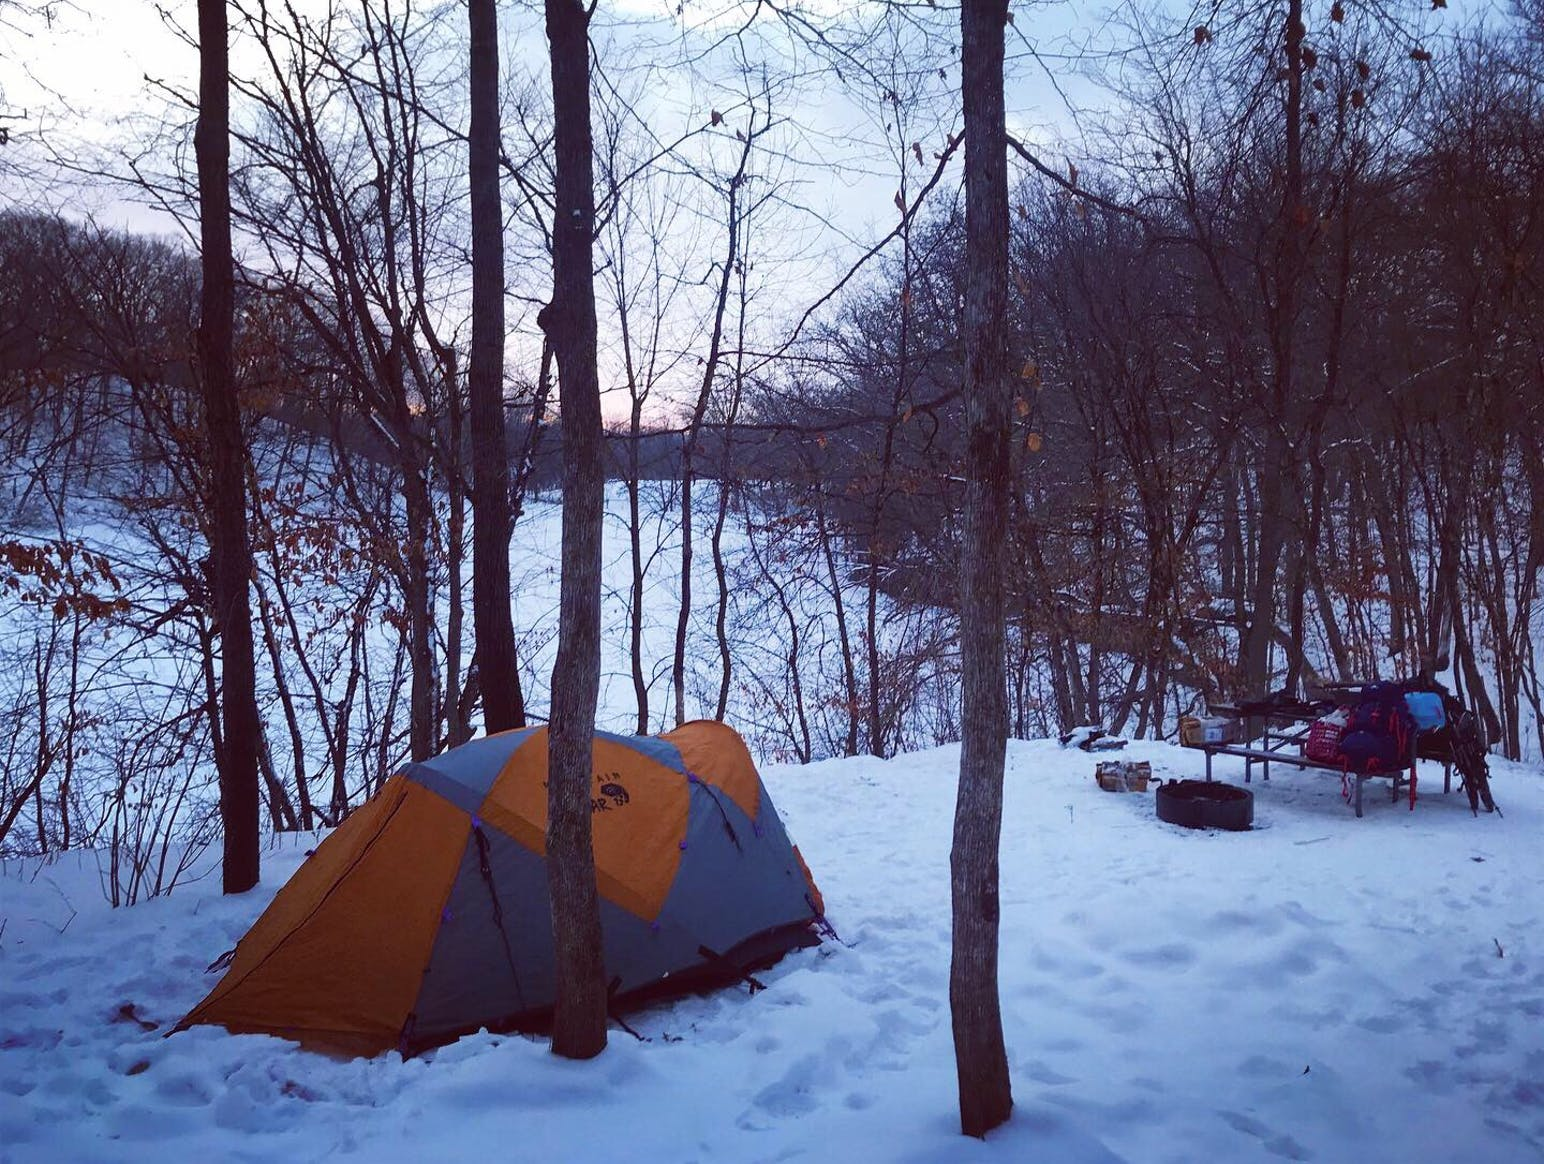 tent in snow in forest